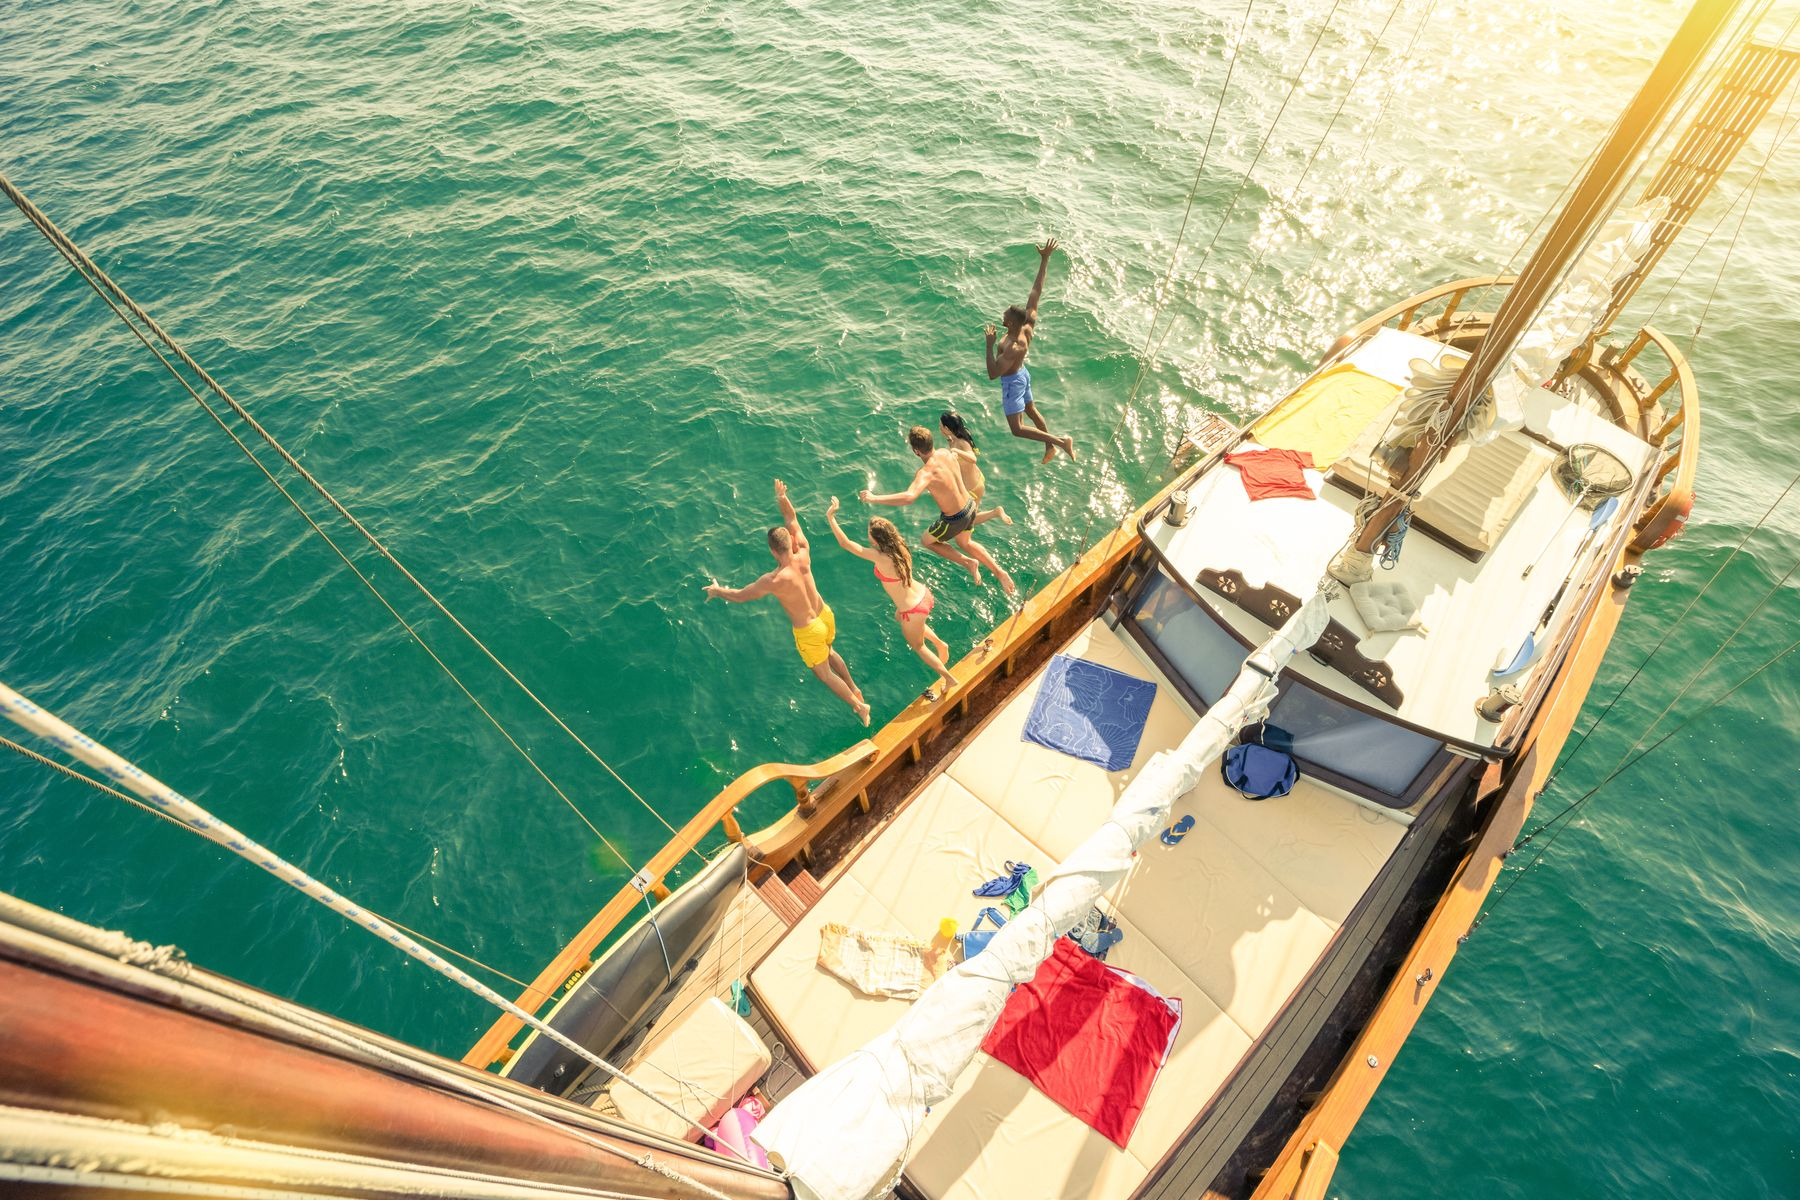 A group jumping into the water from a sailboat